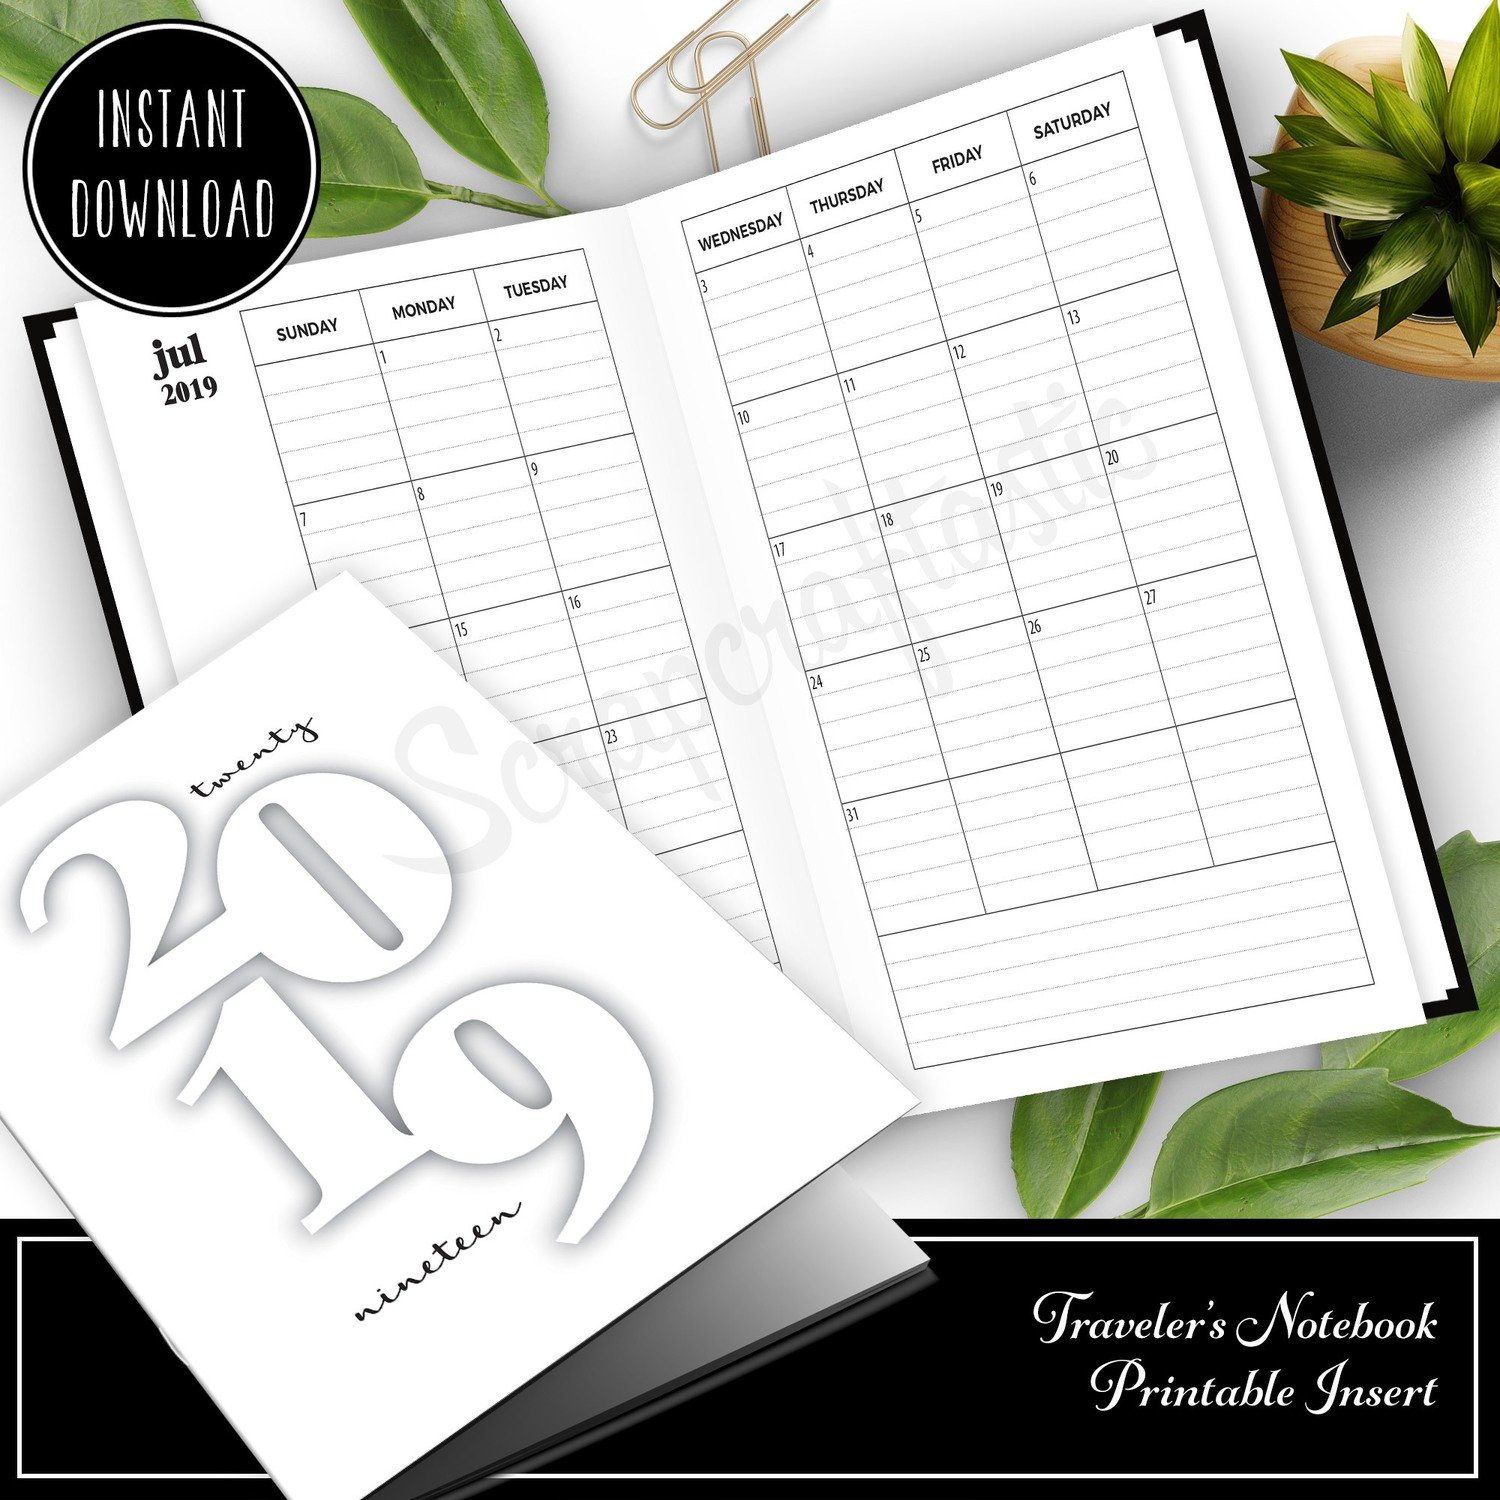 B6 TN or RINGS Dated: 2019 Monthly B6 Printable Insert (Binder or Traveler's Notebook)